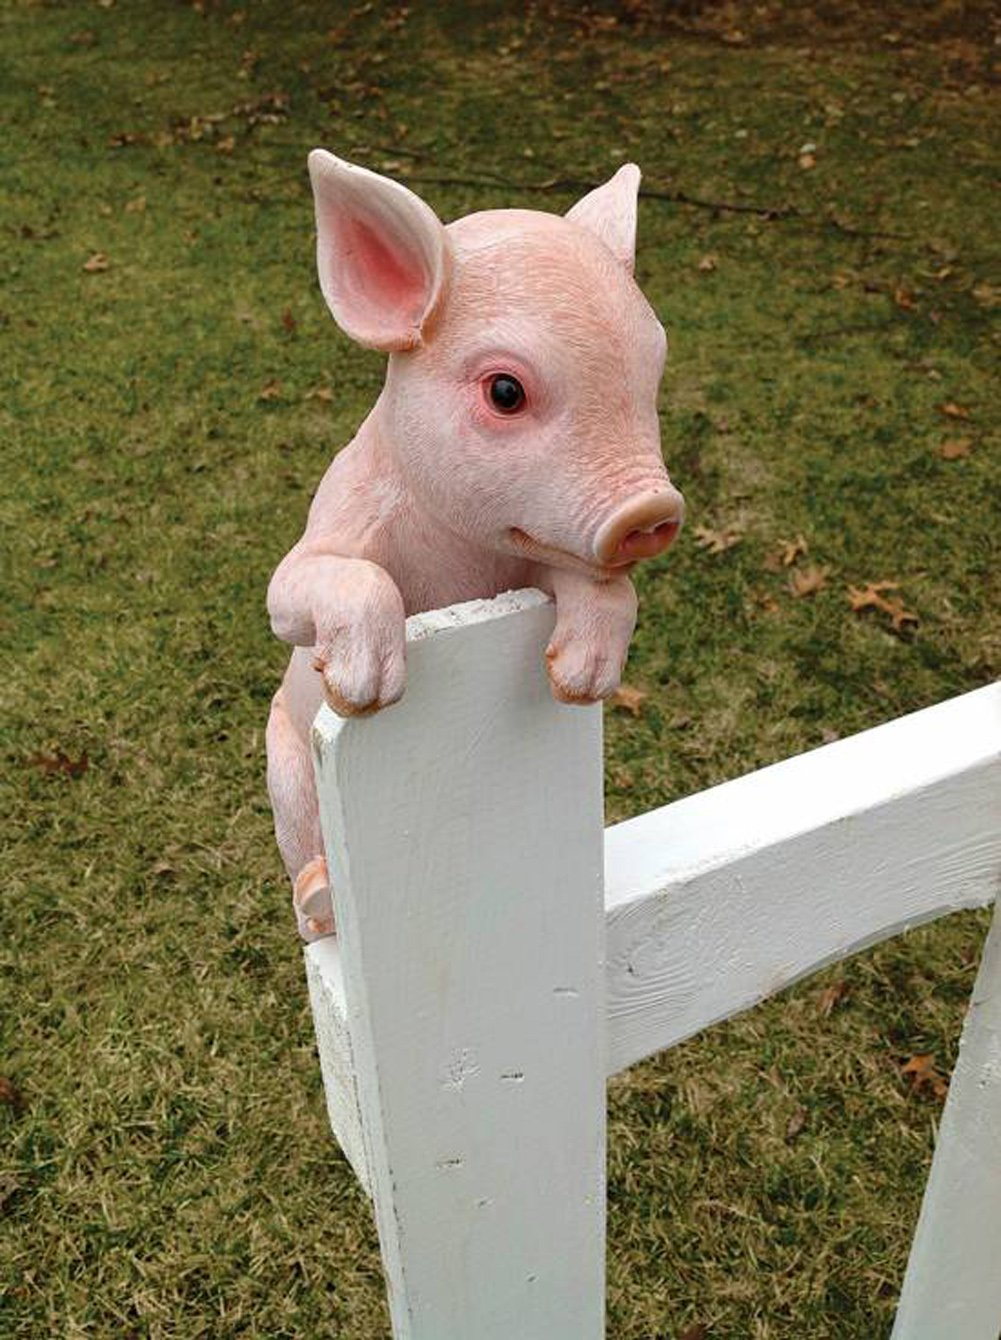 Hang on Piglet 13 Inch Hanger Resin Outdoor Fence Figurine